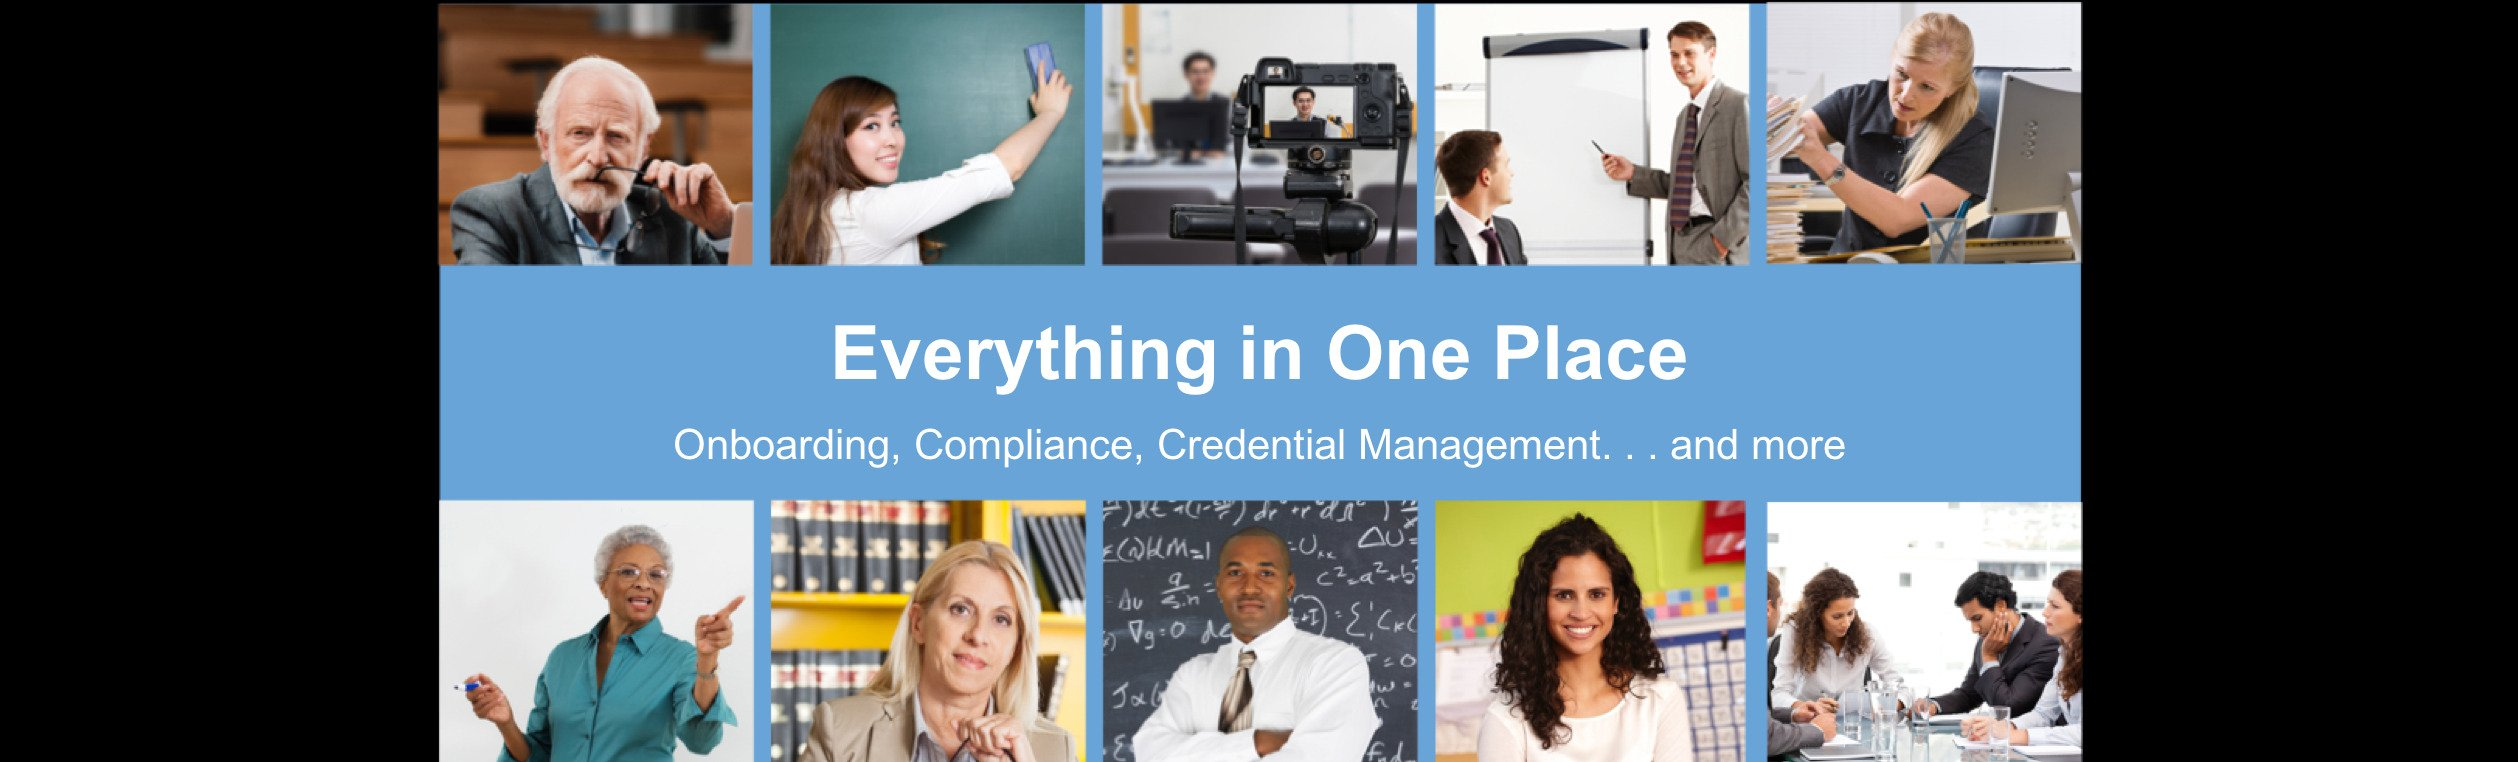 Onboarding, Compliance, Credential Management - Everything In One Place